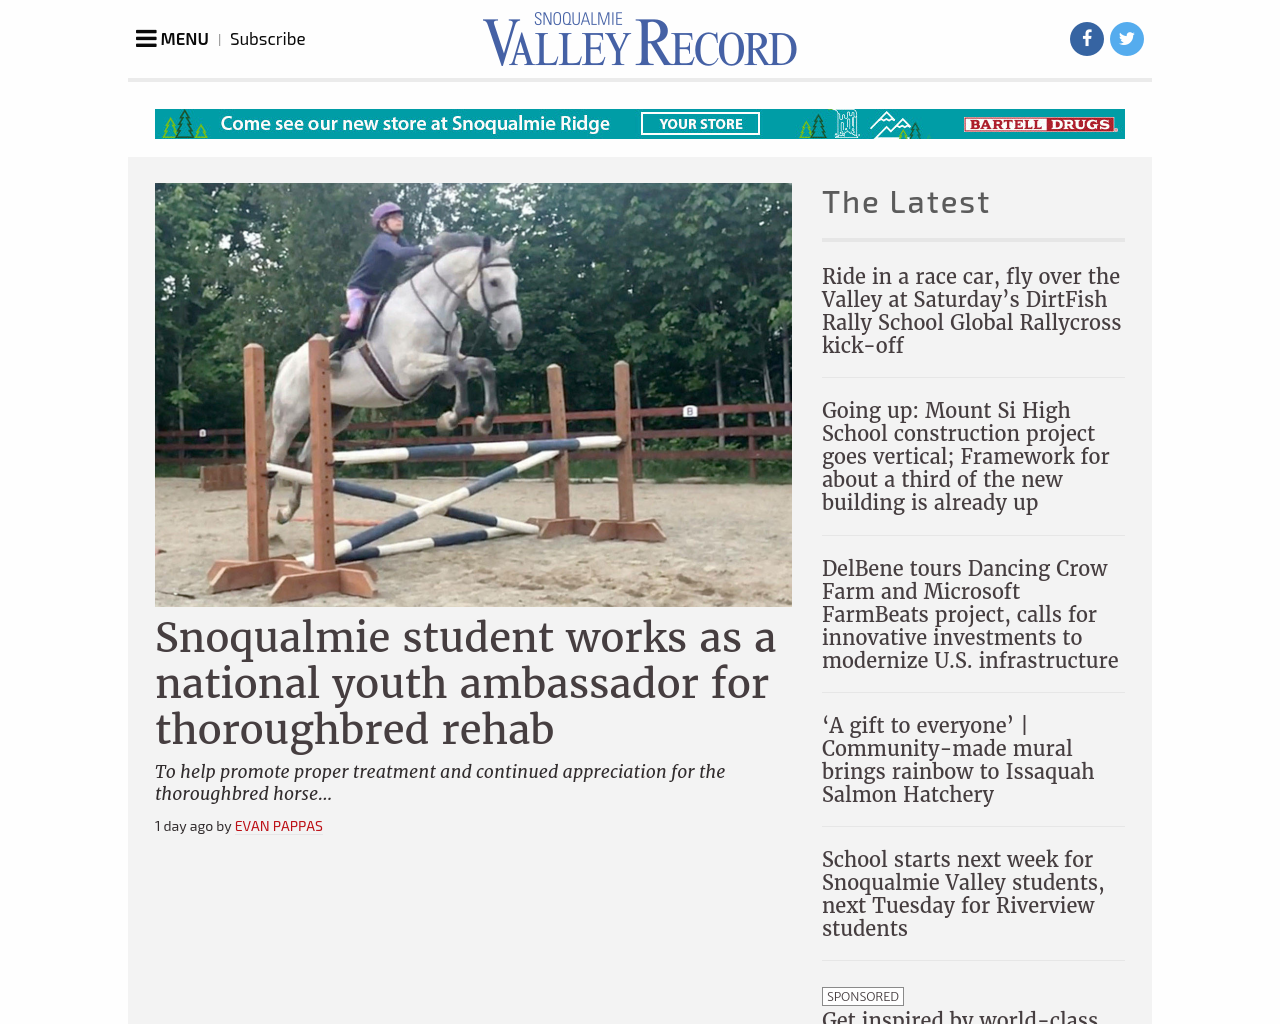 Snoqualmie-Valley-Record-Advertising-Reviews-Pricing